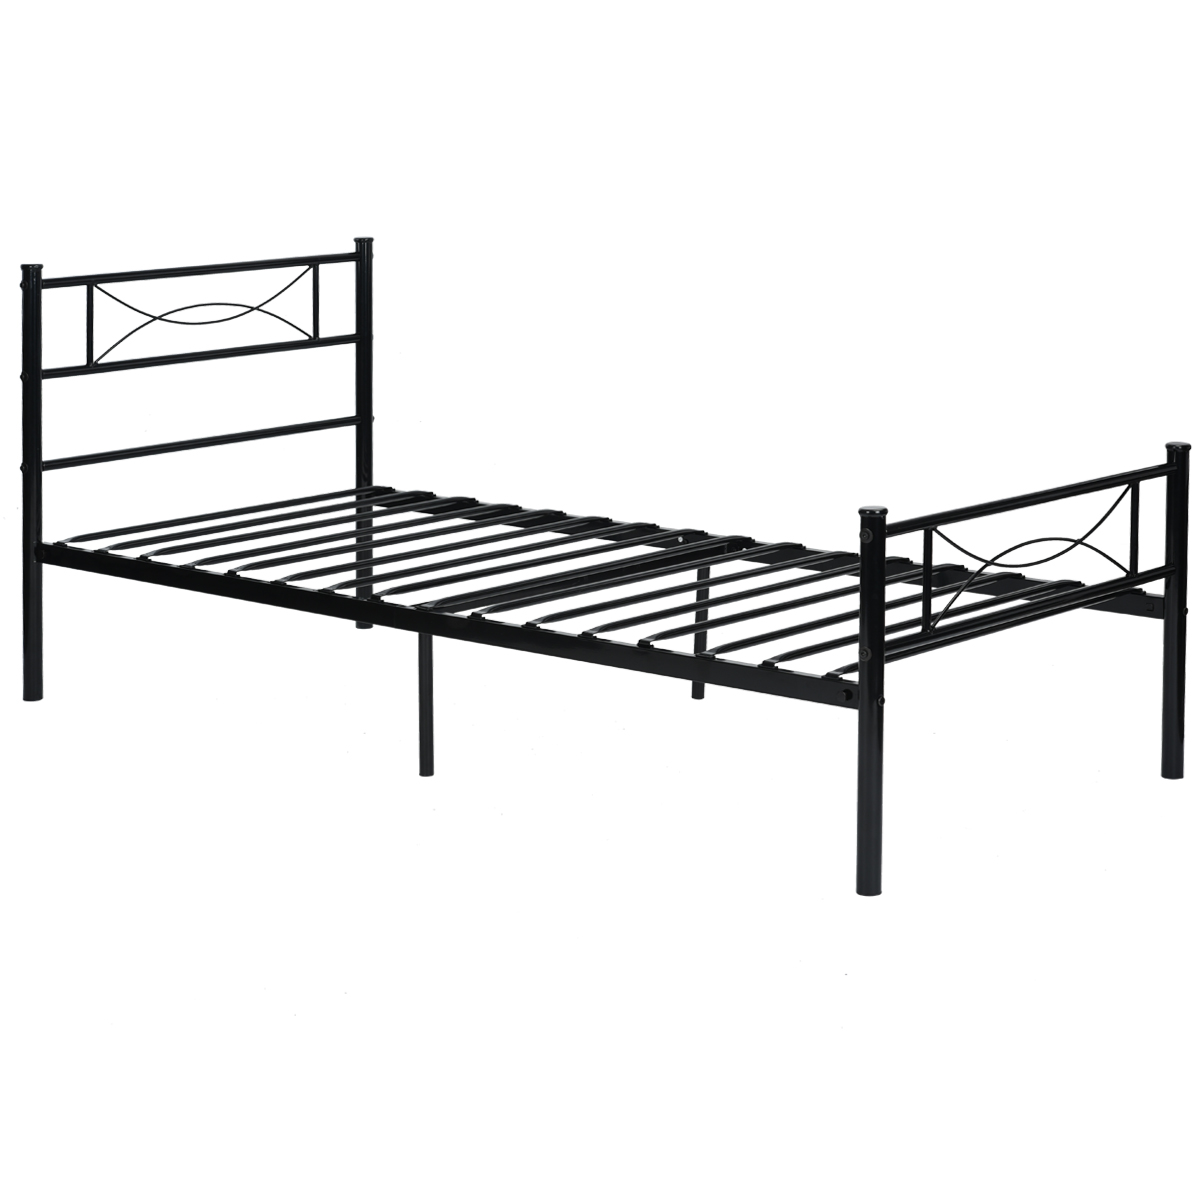 Bedroom metal bed frame platform mattress foundation Metal bed frame twin